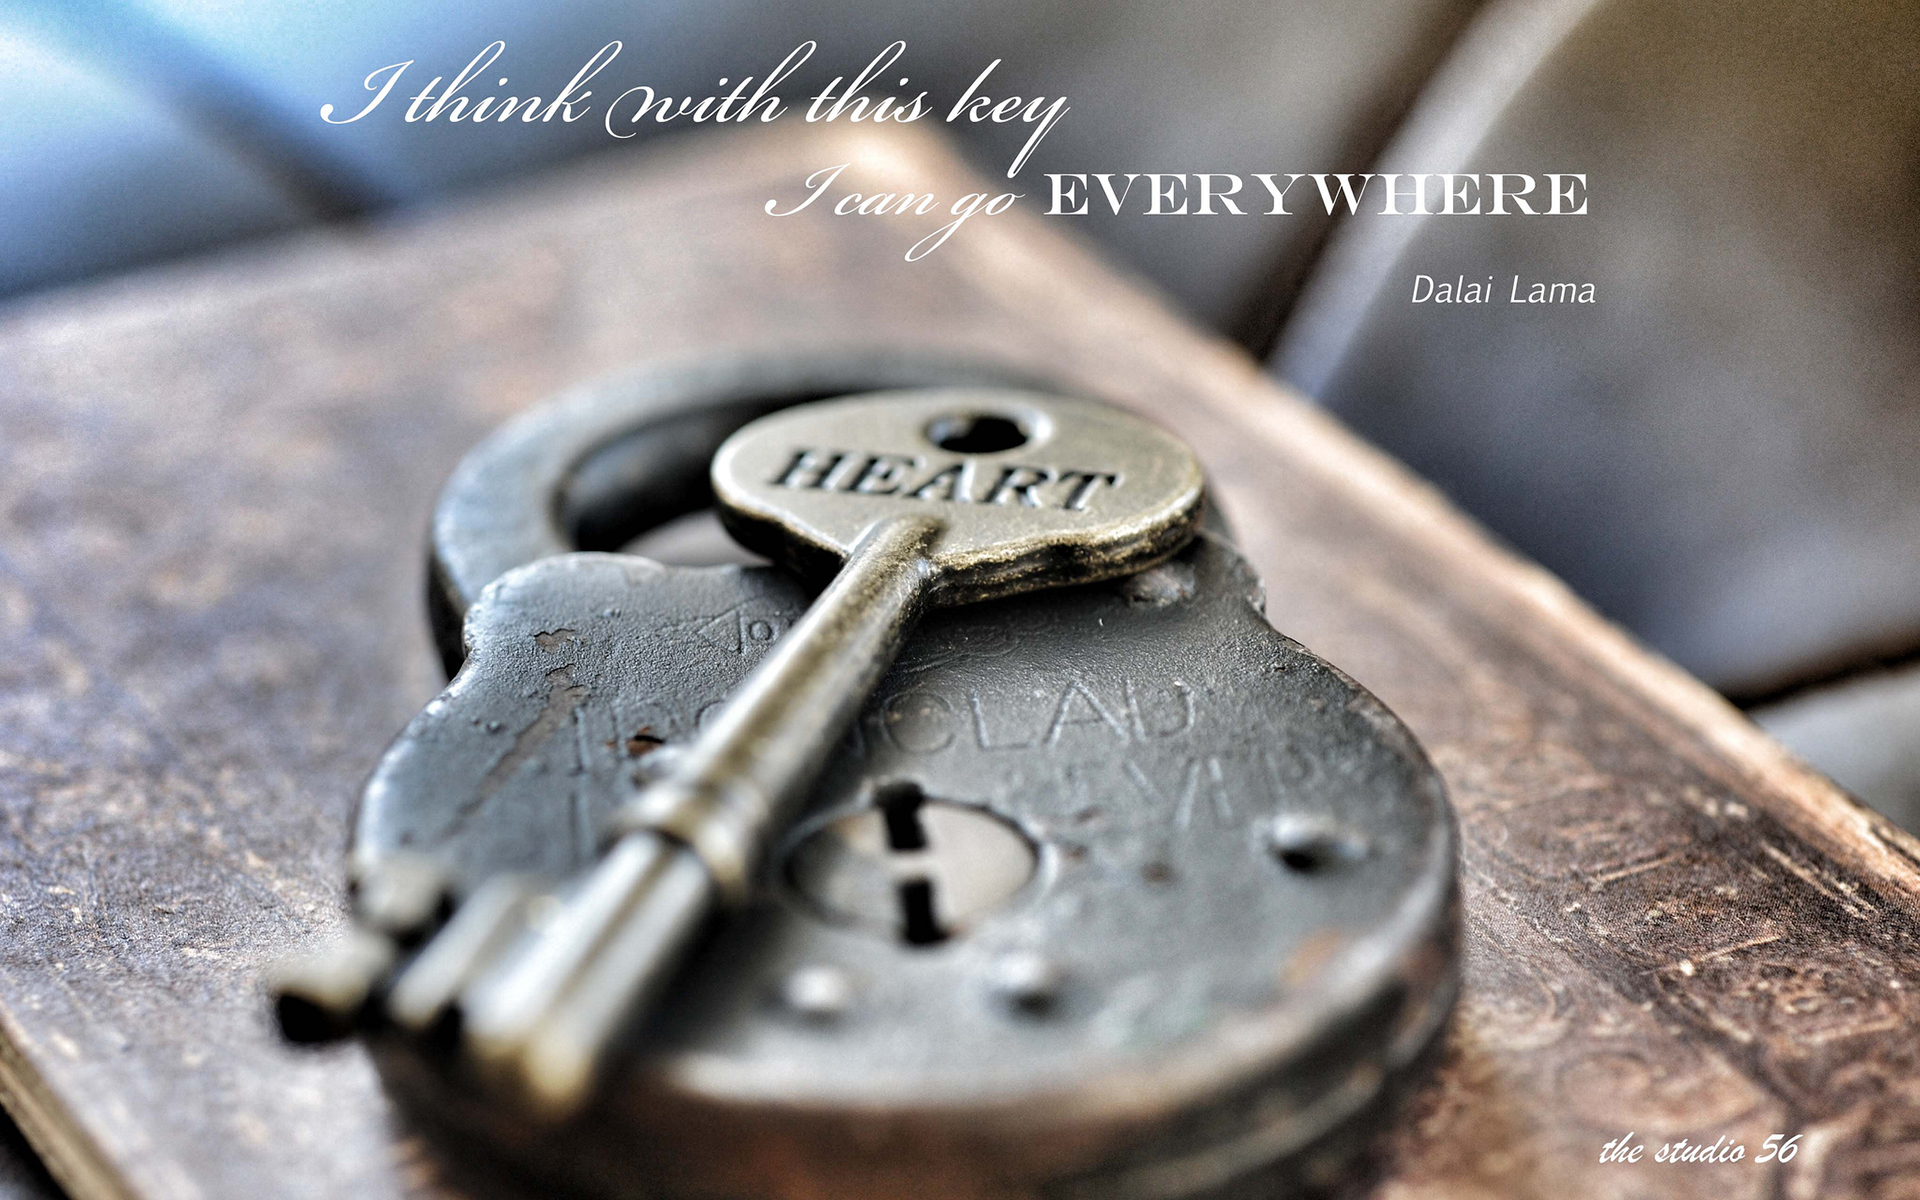 Love Key Hd Wallpaper : Lock Key Dalai Lama heart mood bokeh lock keys macro quotes statements motivation inspiration ...